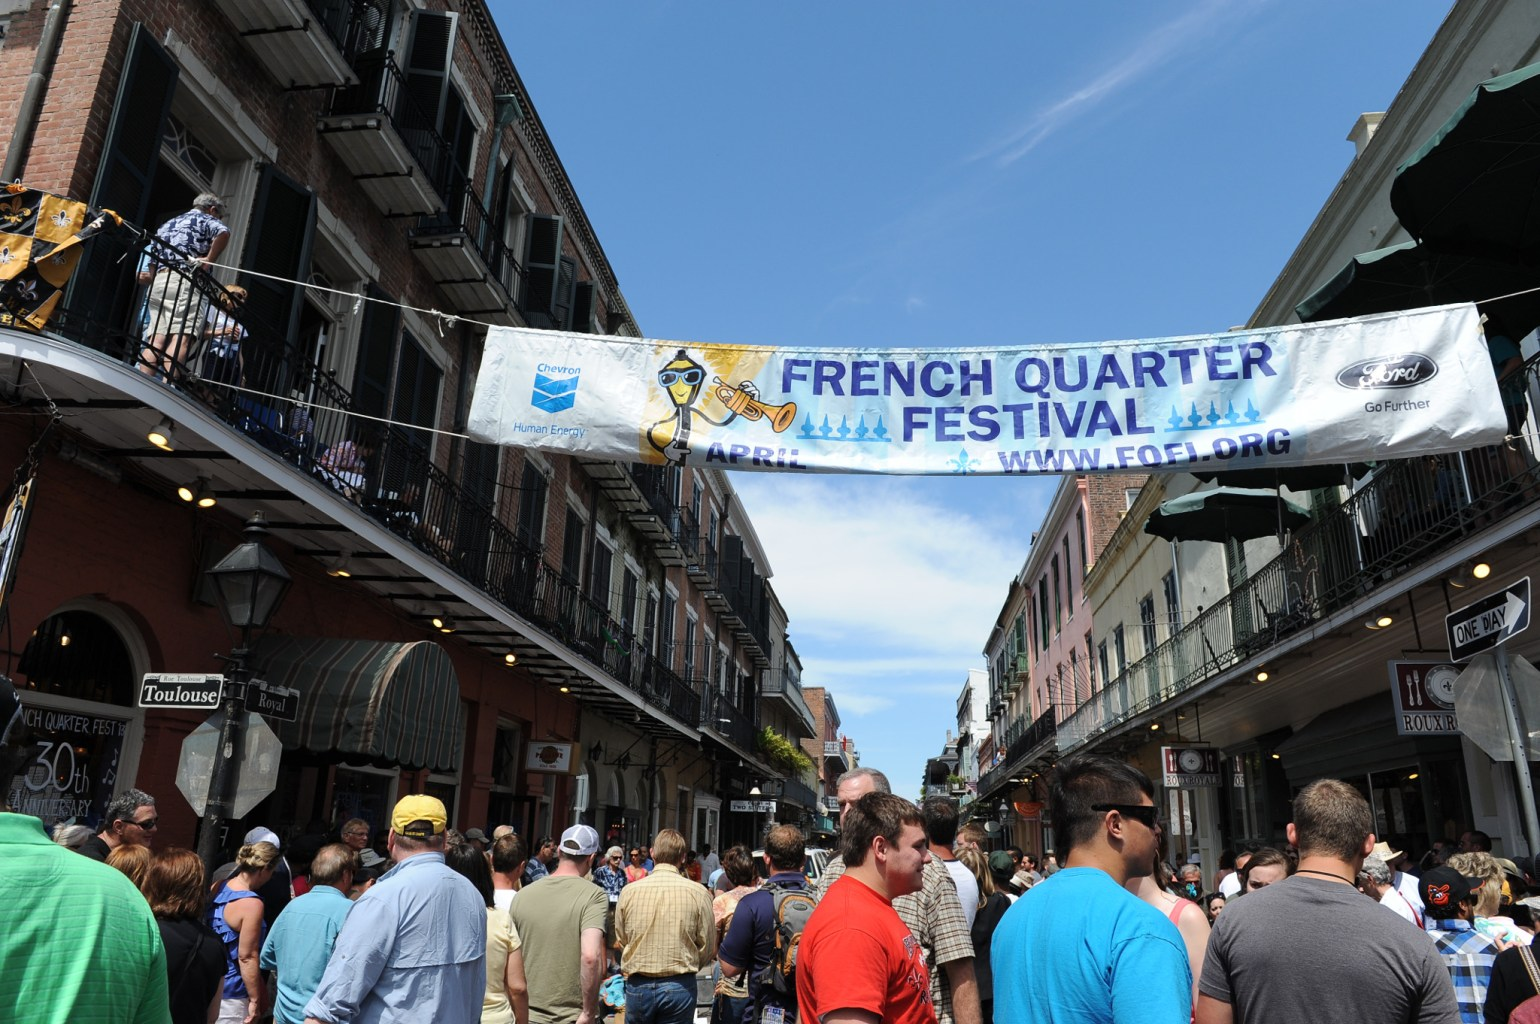 Over the course of four days, more than 1,700 musicians will perform on 23 separate stages across the French Quarter and the Mississippi Riverfront.